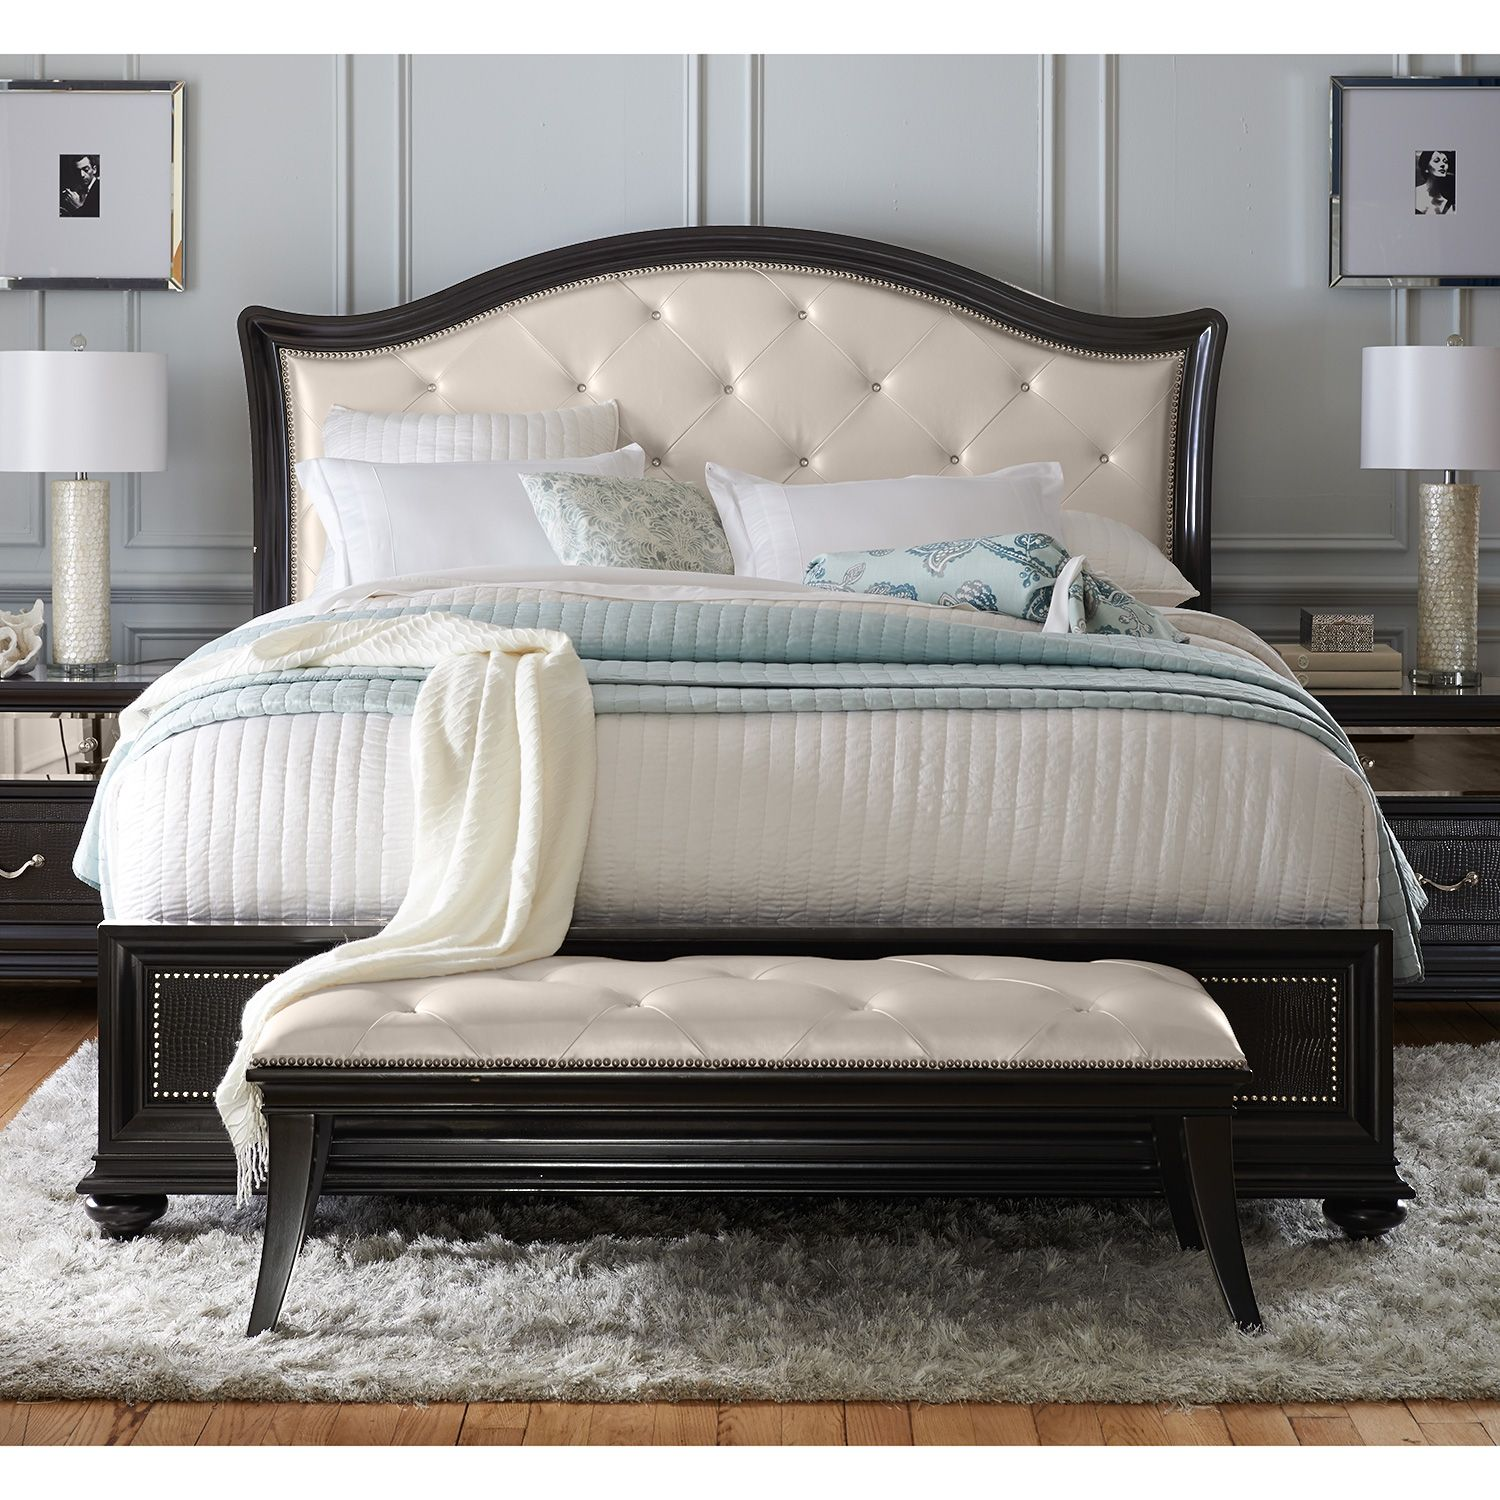 Marilyn Bedroom Queen Bed   Value City Furniture. Marilyn Queen Bed   American Signature Furniture   My House